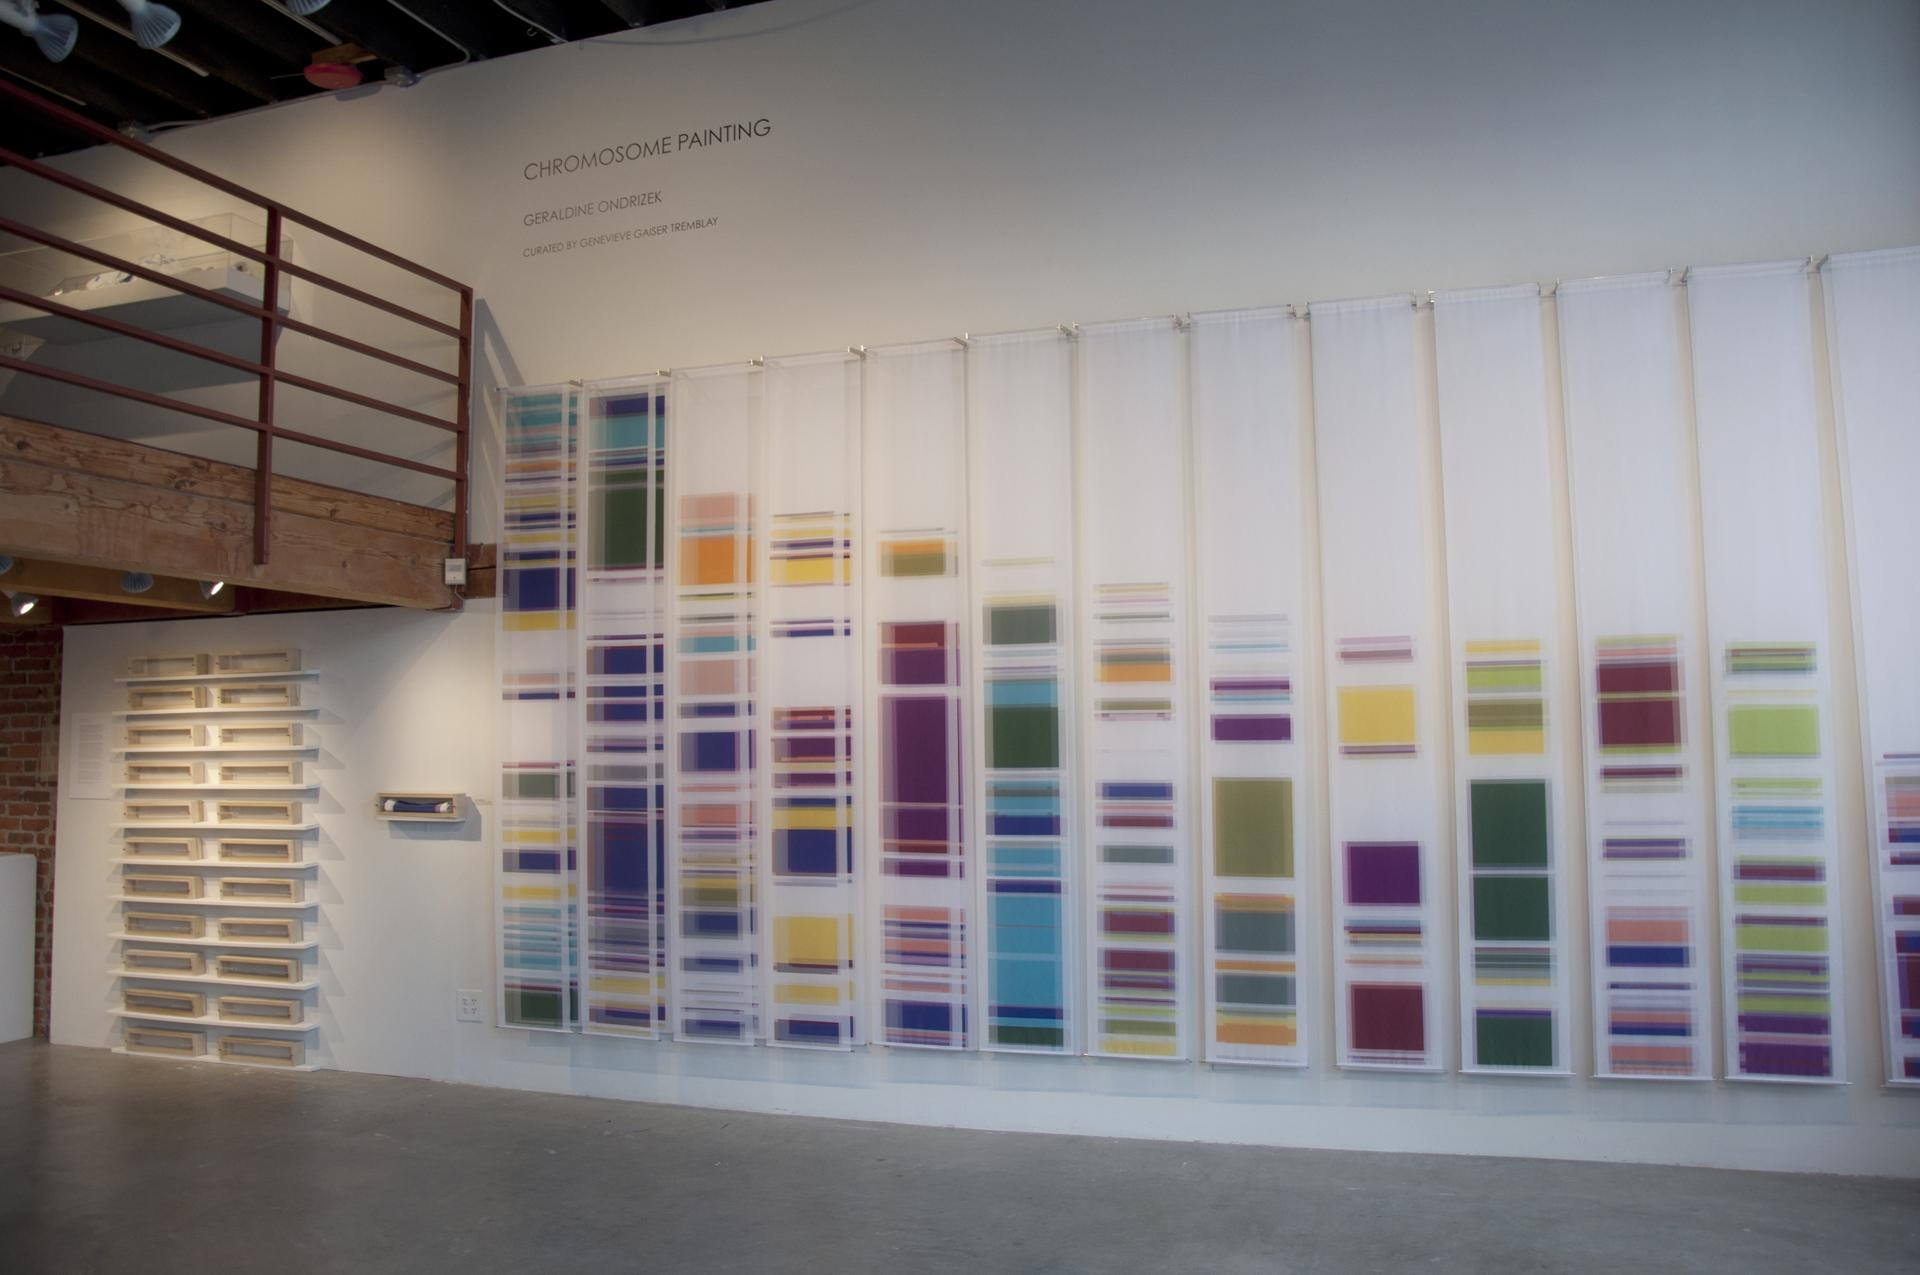 Chromosome Painting: Discovering Beauty In Dna | Uw News Within Dna Wall Art (View 16 of 20)